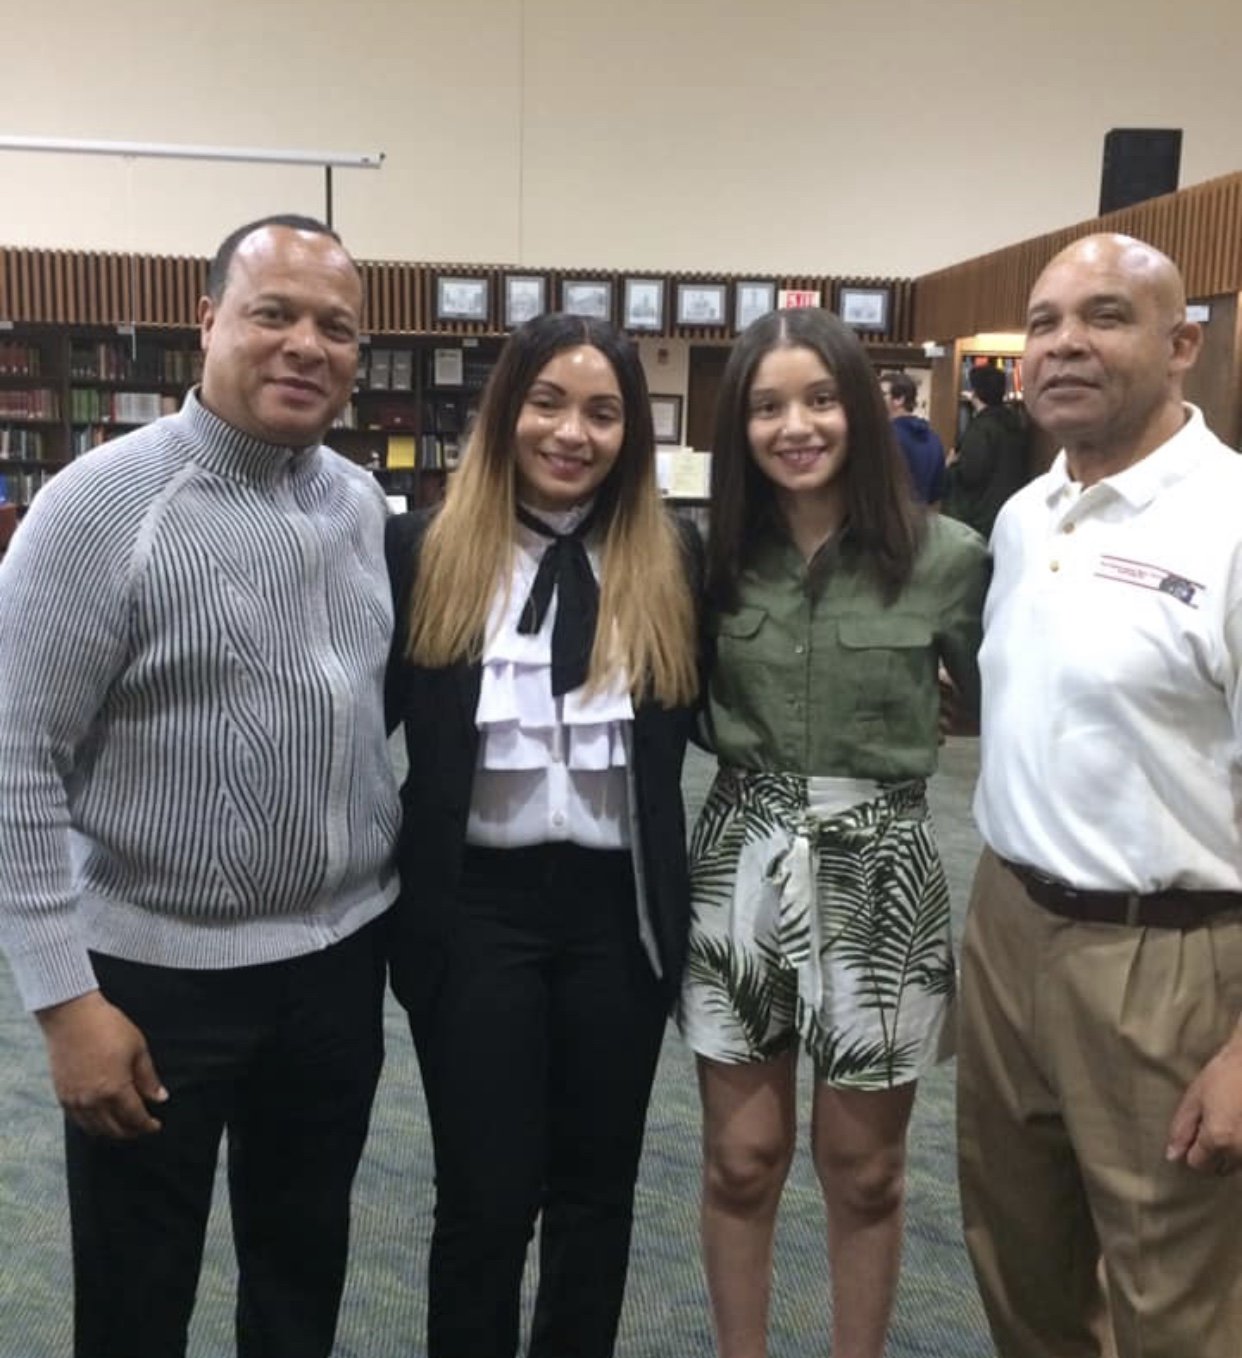 Dr. Mo with her Uncle, Ralph Miller, daughter Araceli, and Director of the WV Center for African-American Art & Culture. May 11, 2019.